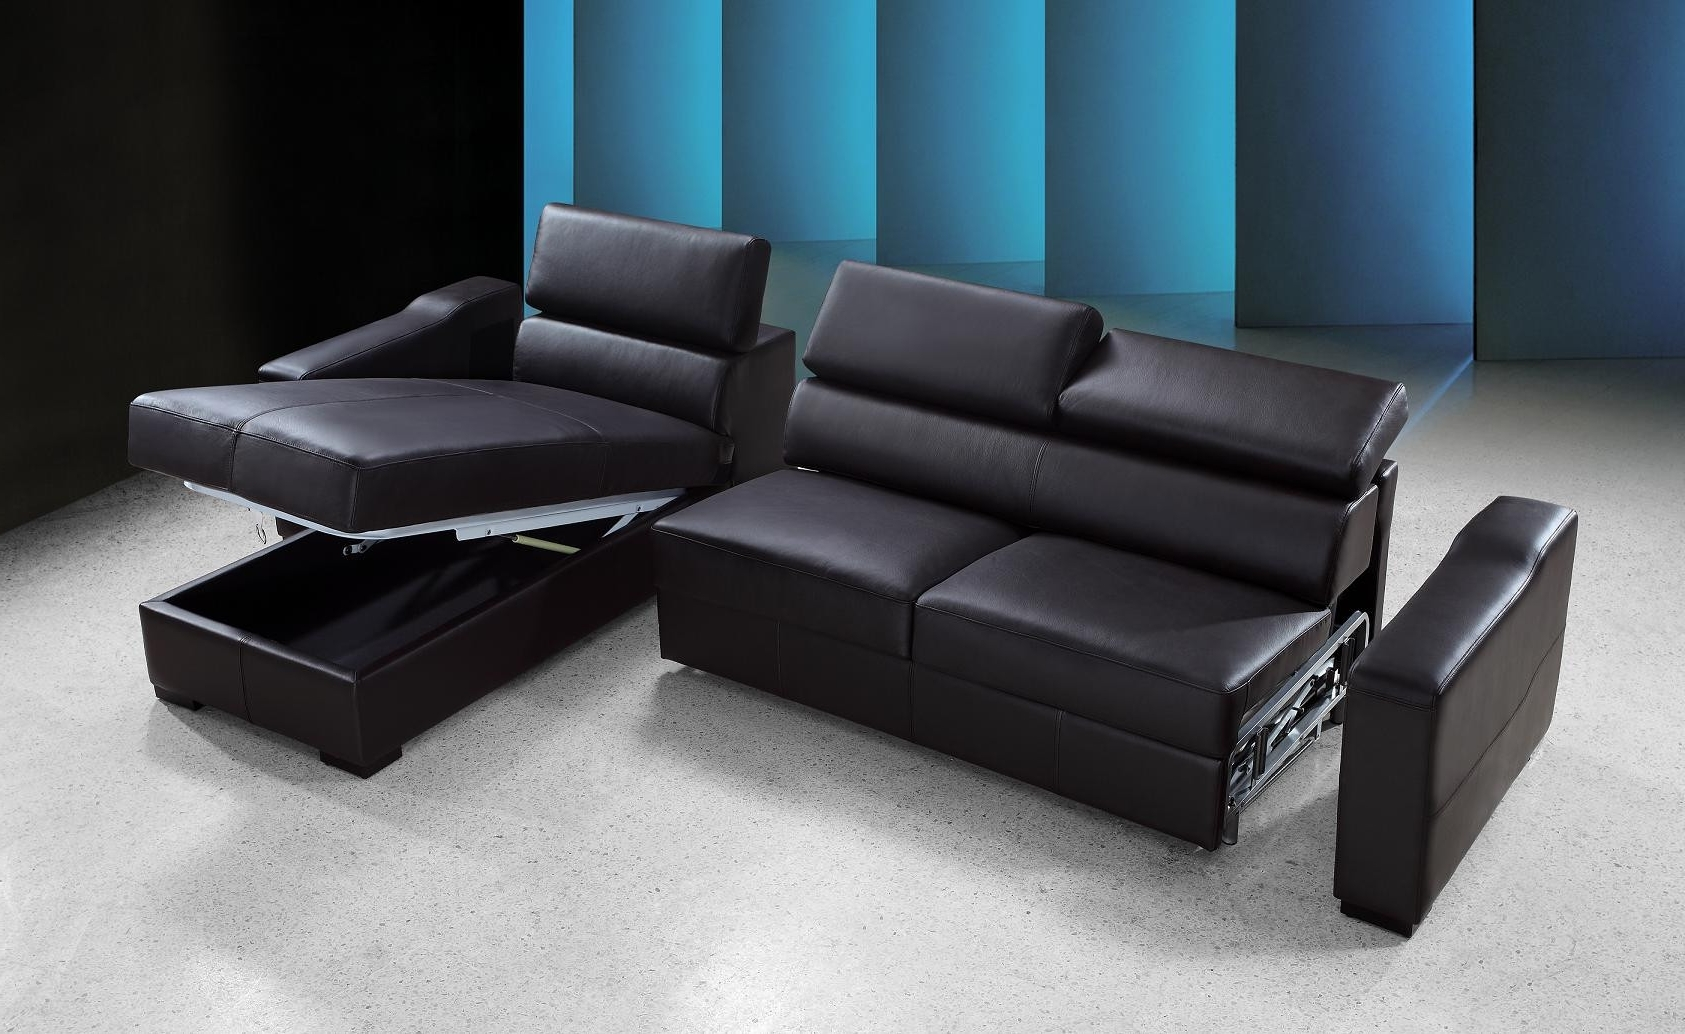 Sectional Sofas With Storage In Well Known Reversible Espresso Leather Sectional Sofa Bed W/ Storage (View 11 of 20)